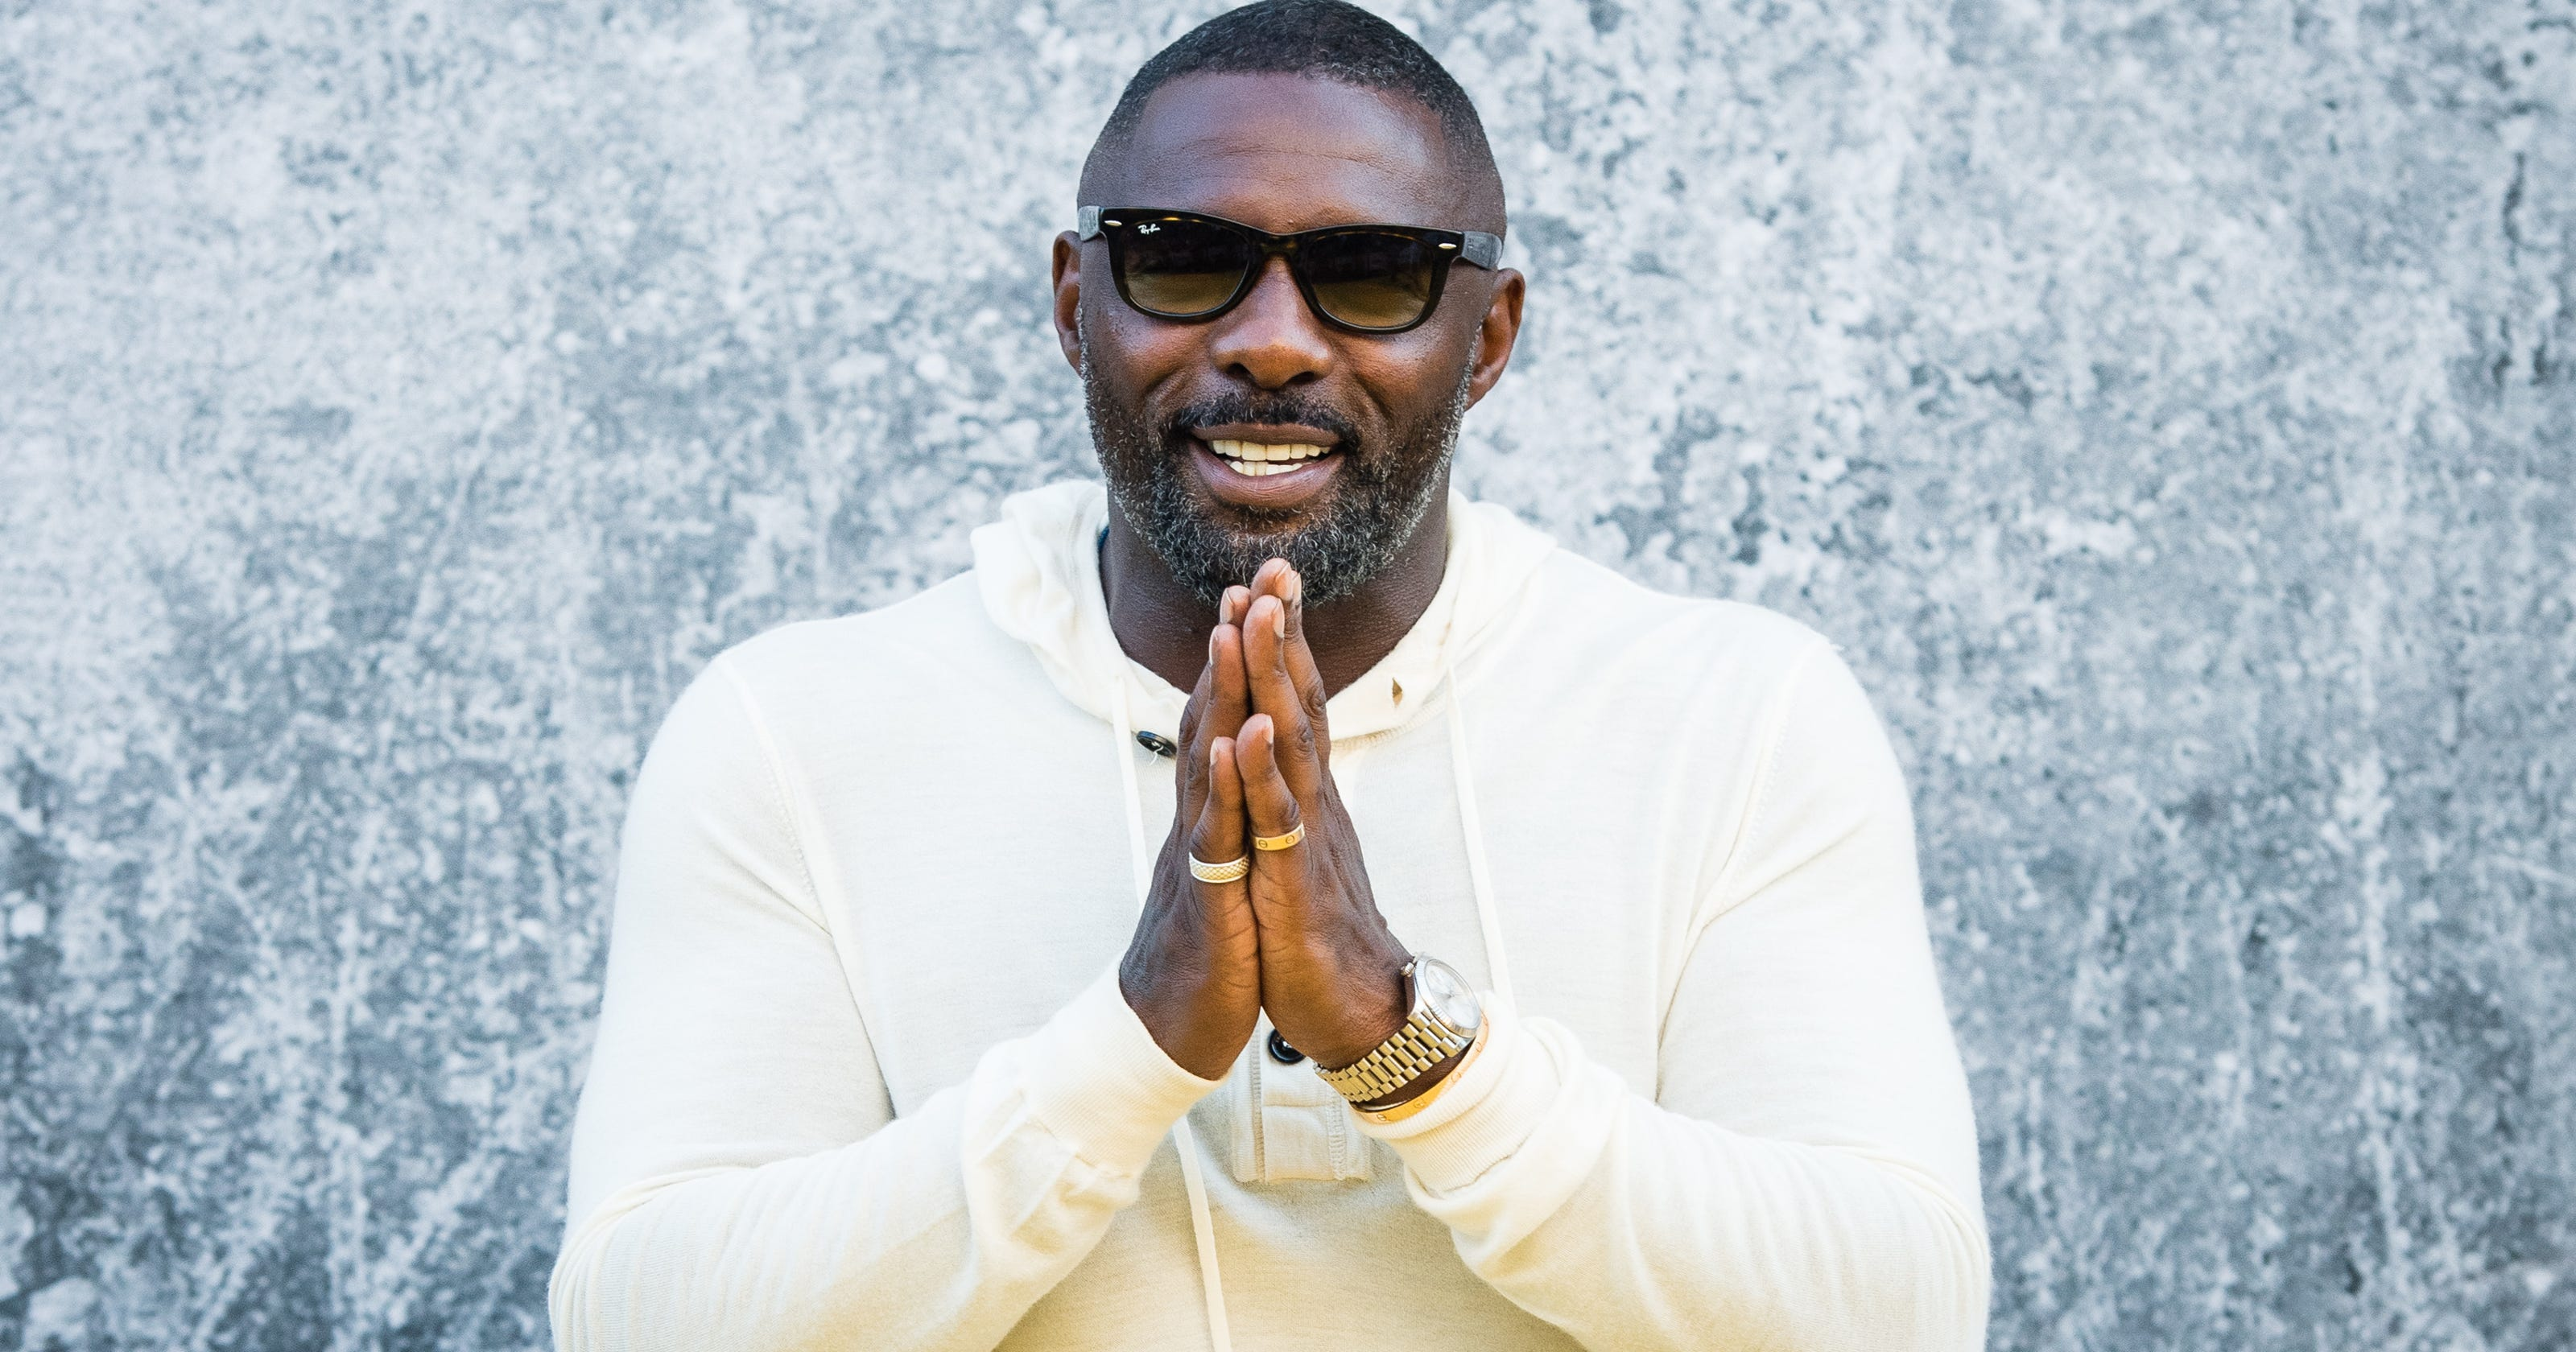 Idris Elba named People's 'Sexiest Man Alive' for 2018